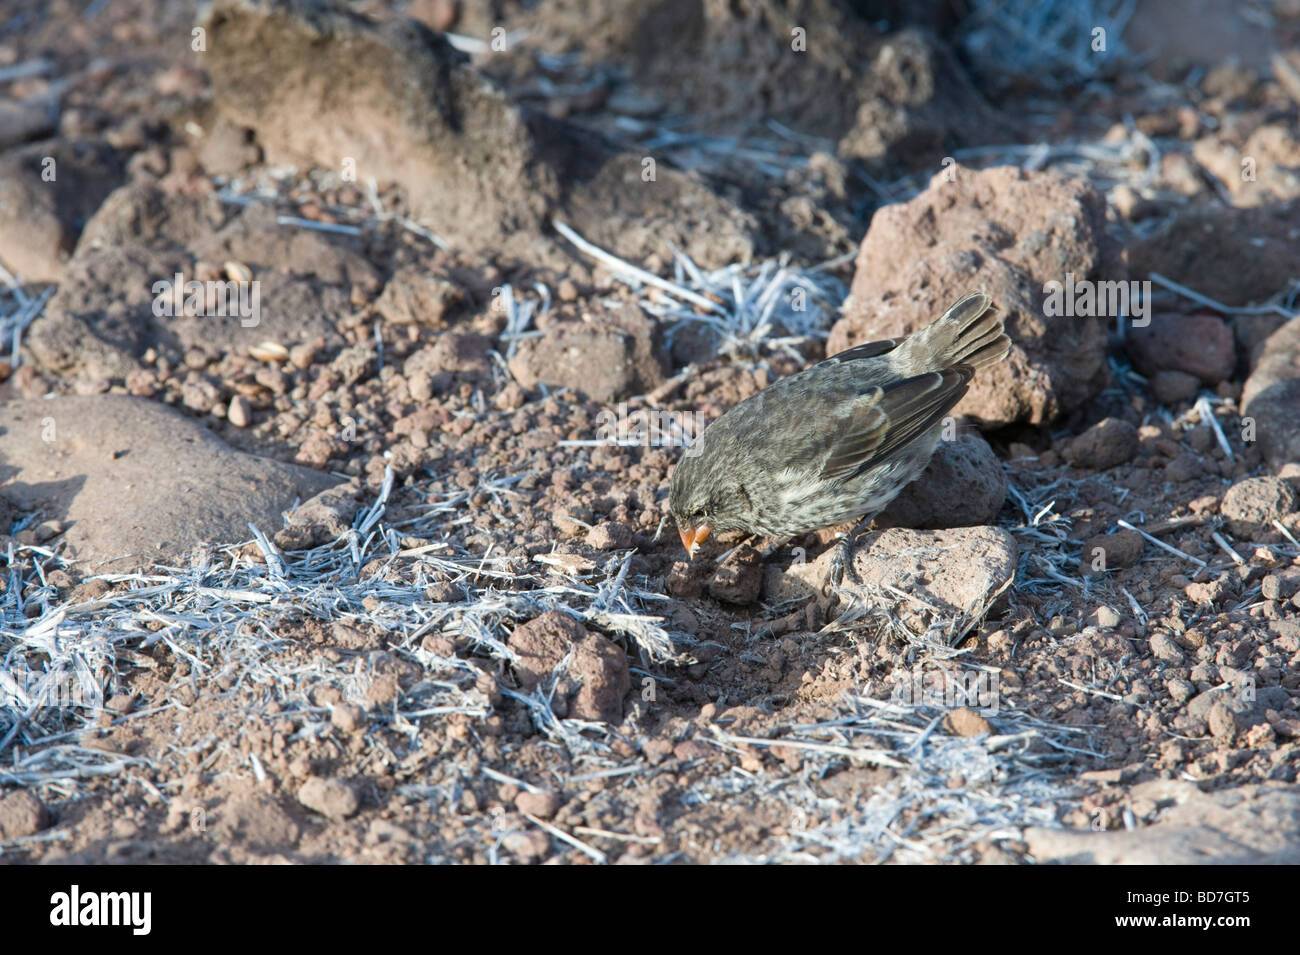 Small Ground Finch (Geospiza fuliginosa) juvenile feeding Santa Fe Island Galapagos Islands Ecuador Pacific Ocean - Stock Image